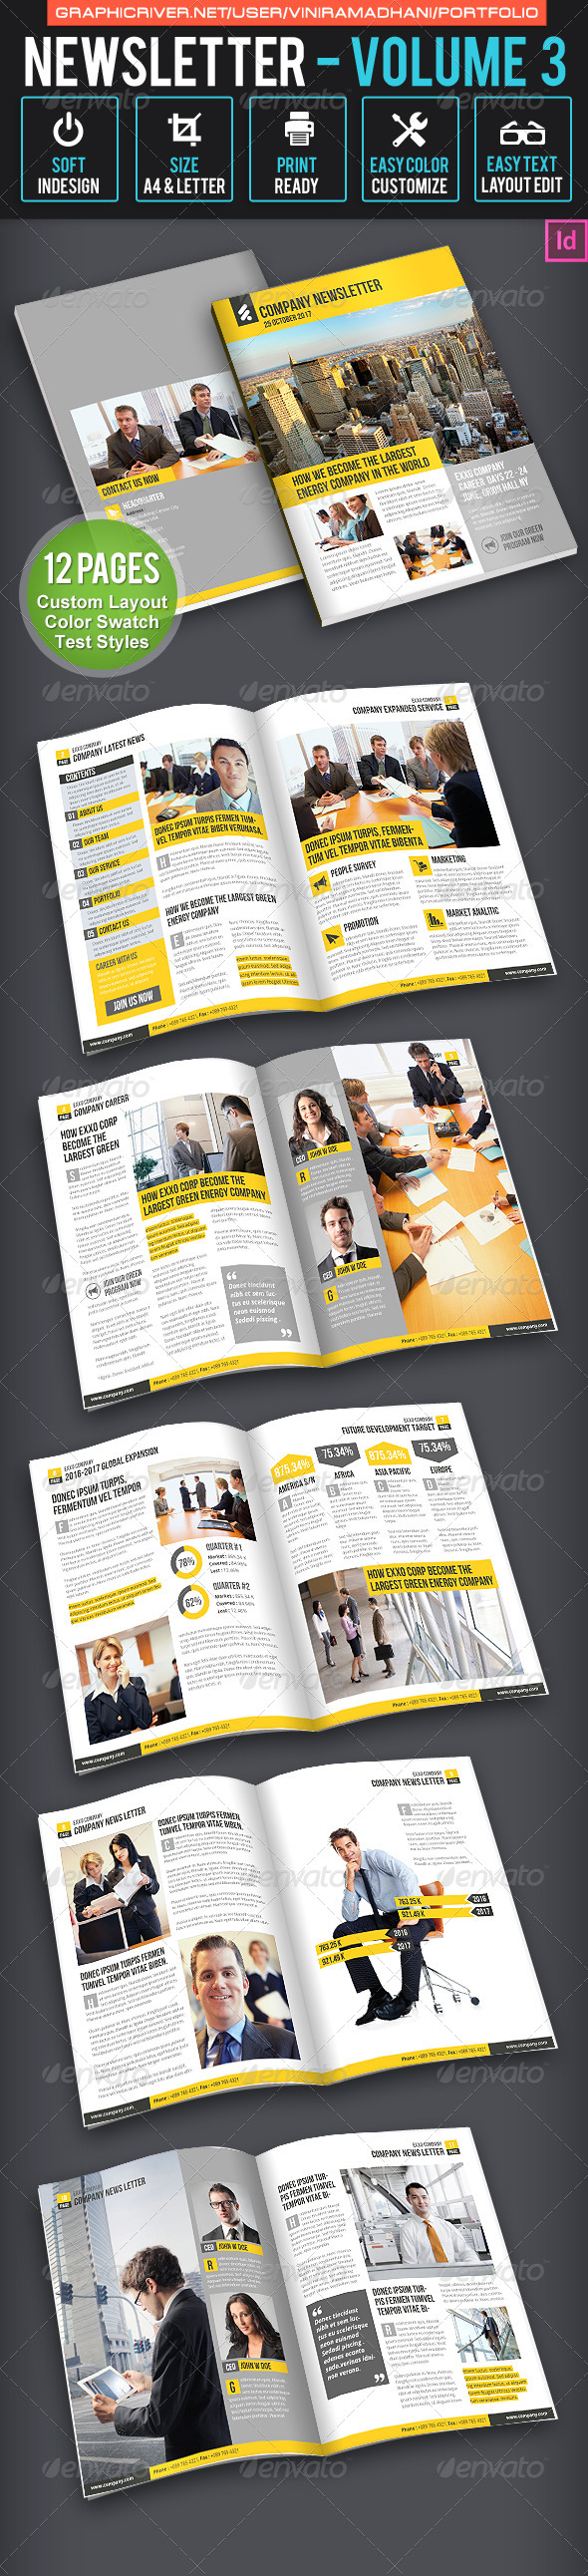 Business Newsletter Volume 3 - Newsletters Print Templates